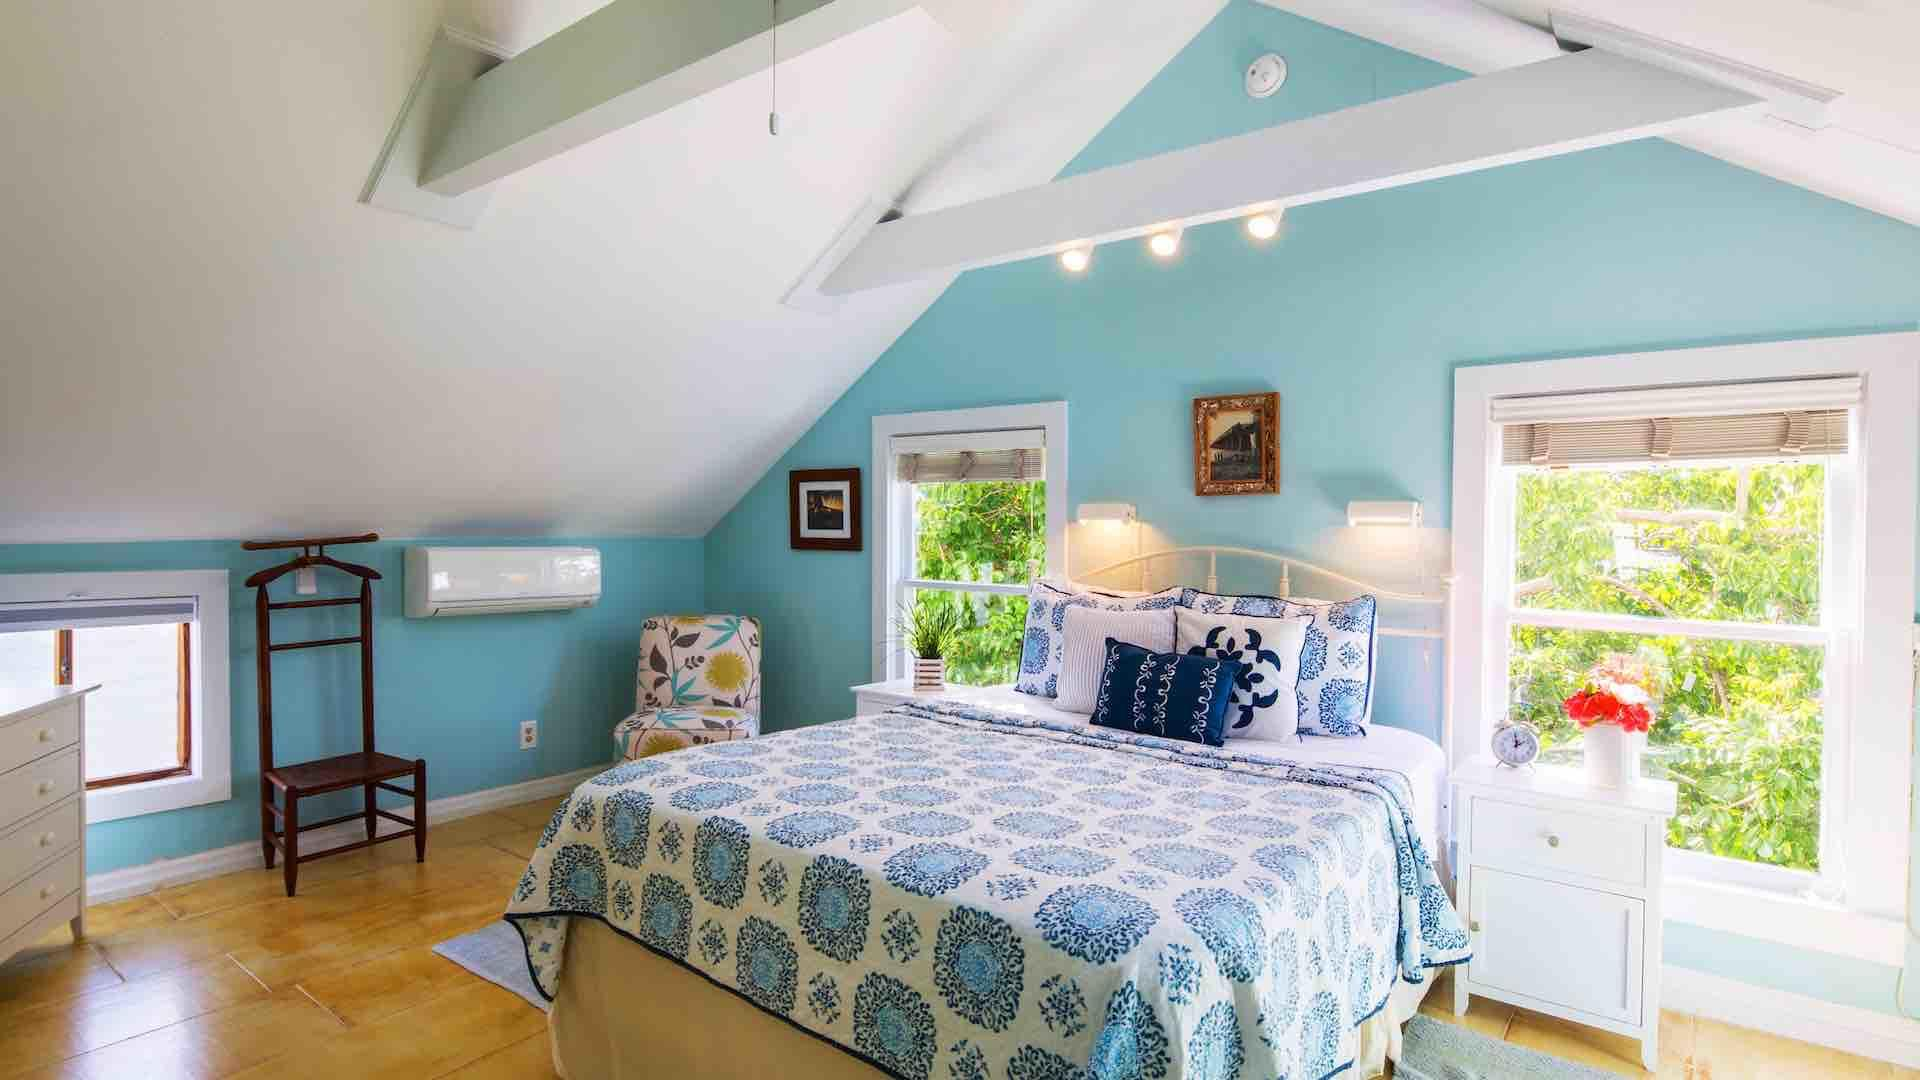 The first bedroom has vaulted ceilings and a Queen bed...